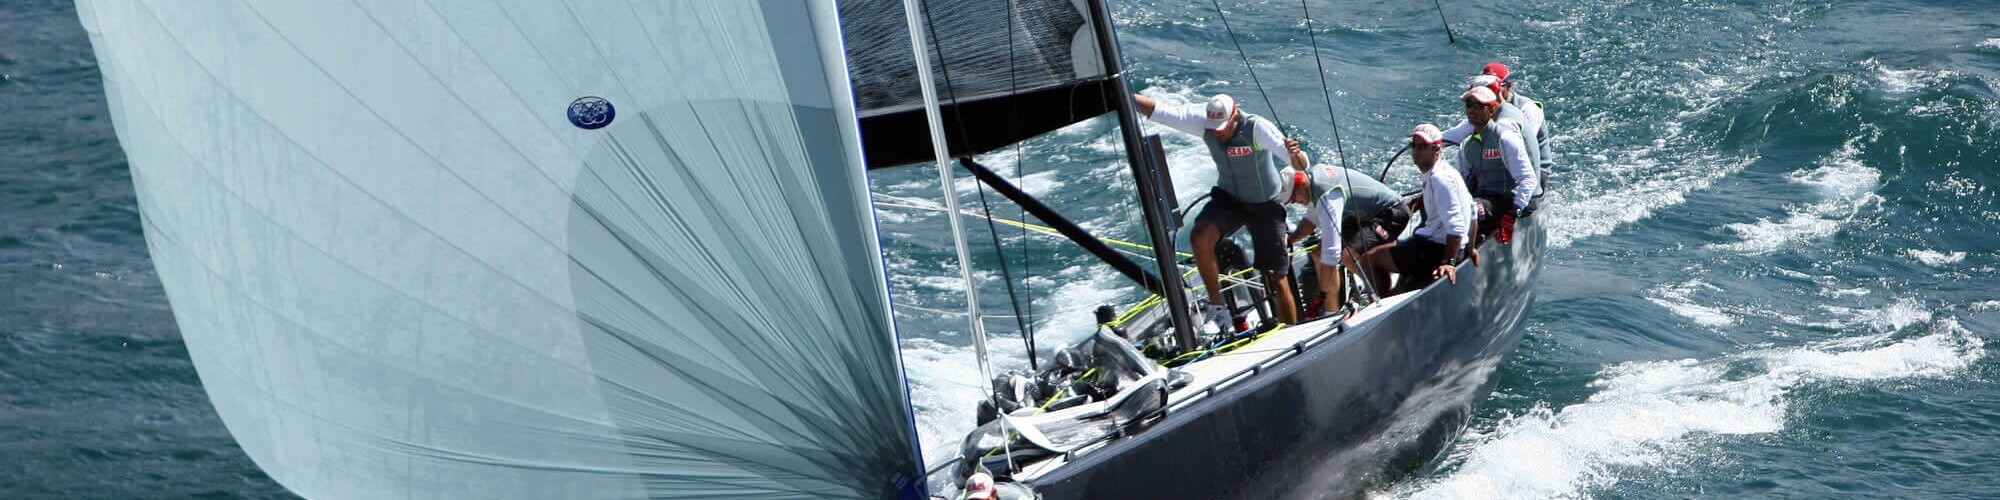 Olimpic Sails Professional Sails